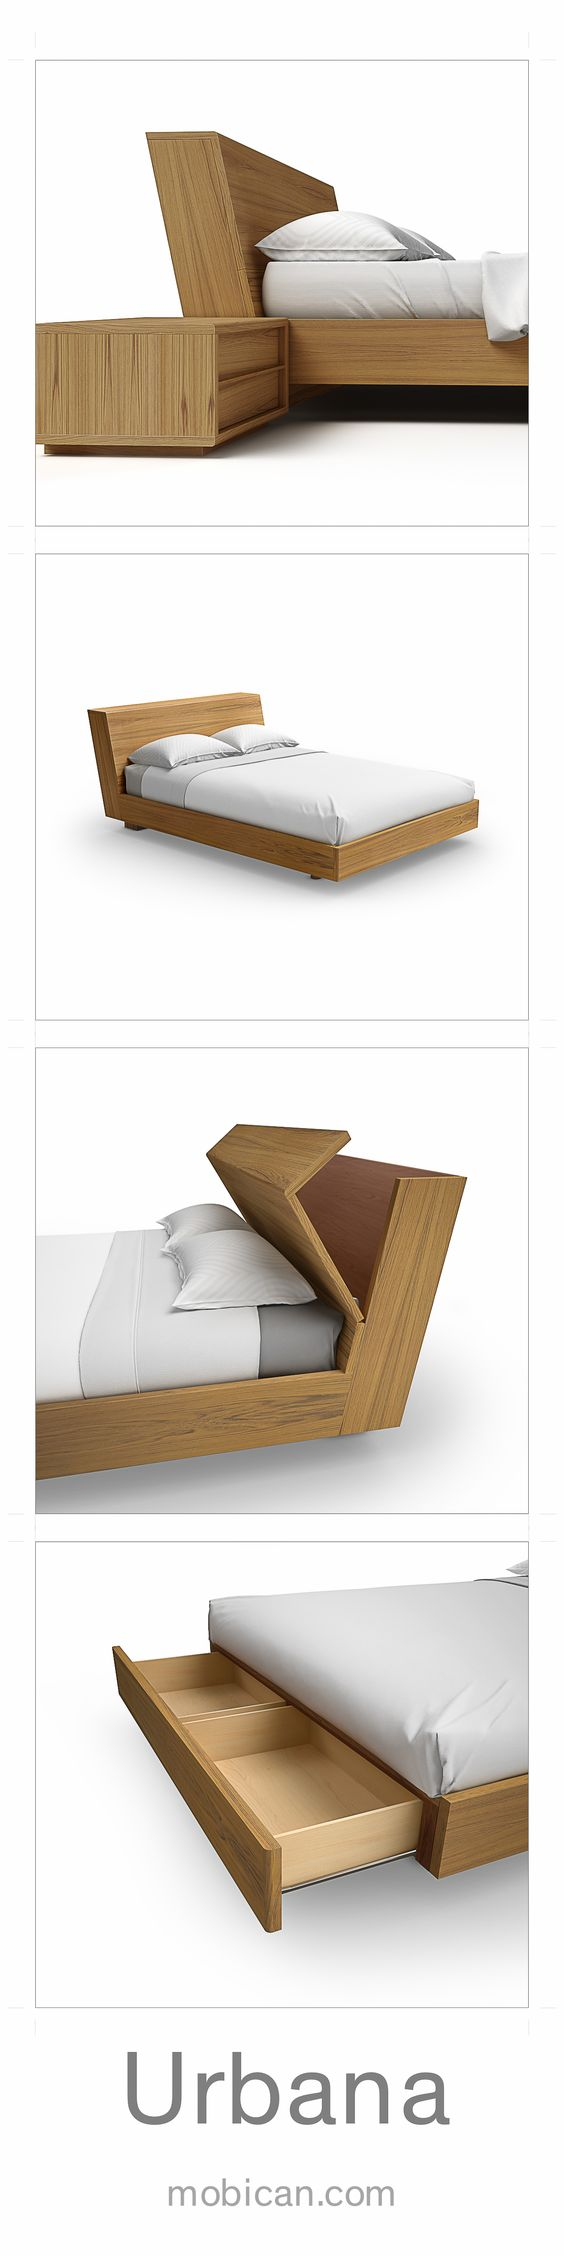 Mobican Bedroom Furniture Pinterest O The Worlds Catalog Of Ideas